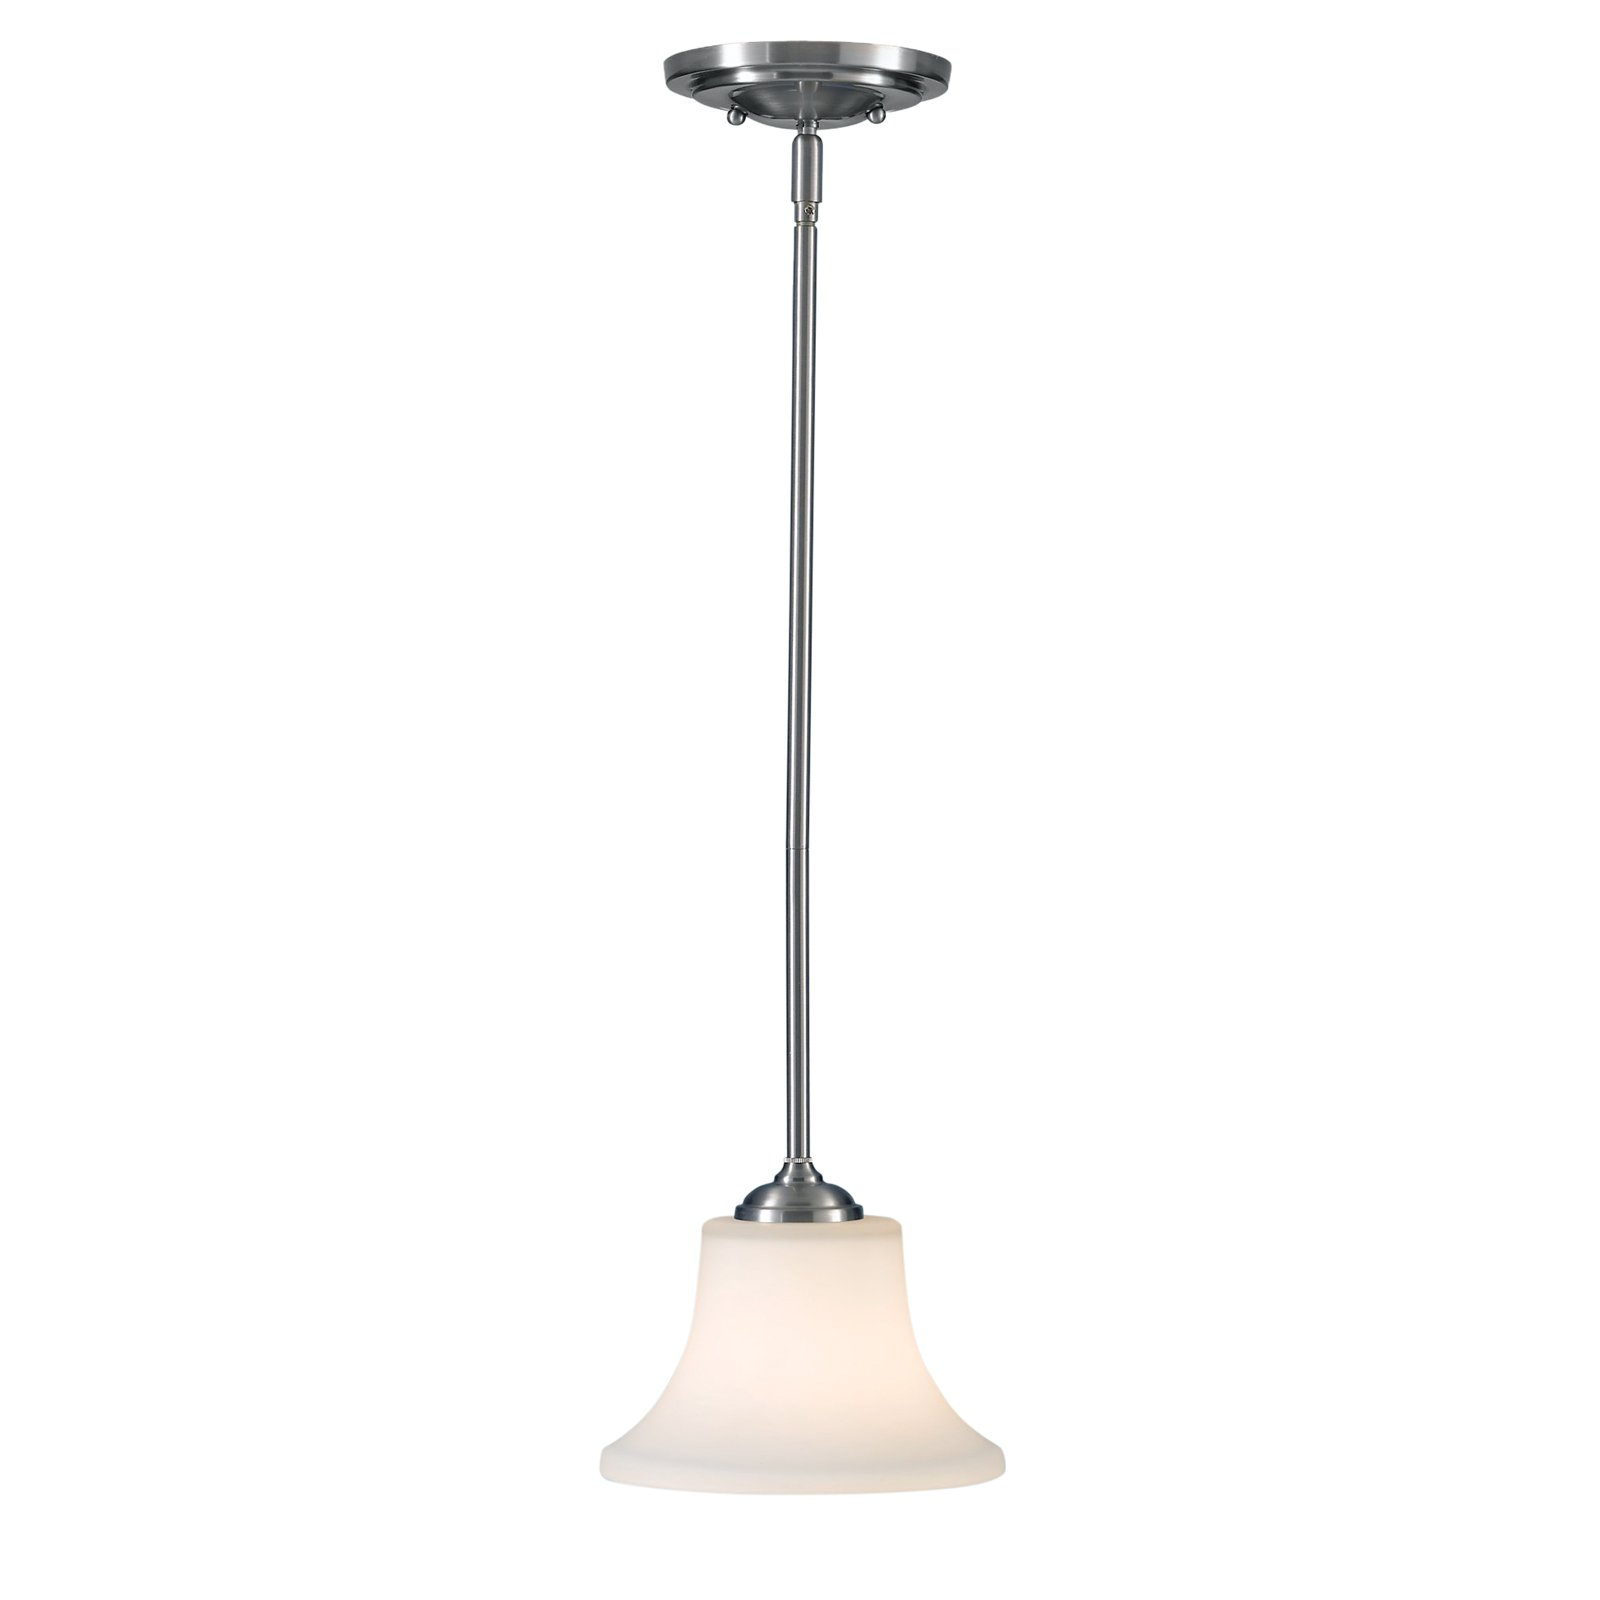 Feiss Barrington Mini Pendant 8W in. Brushed Steel by Murray Feiss